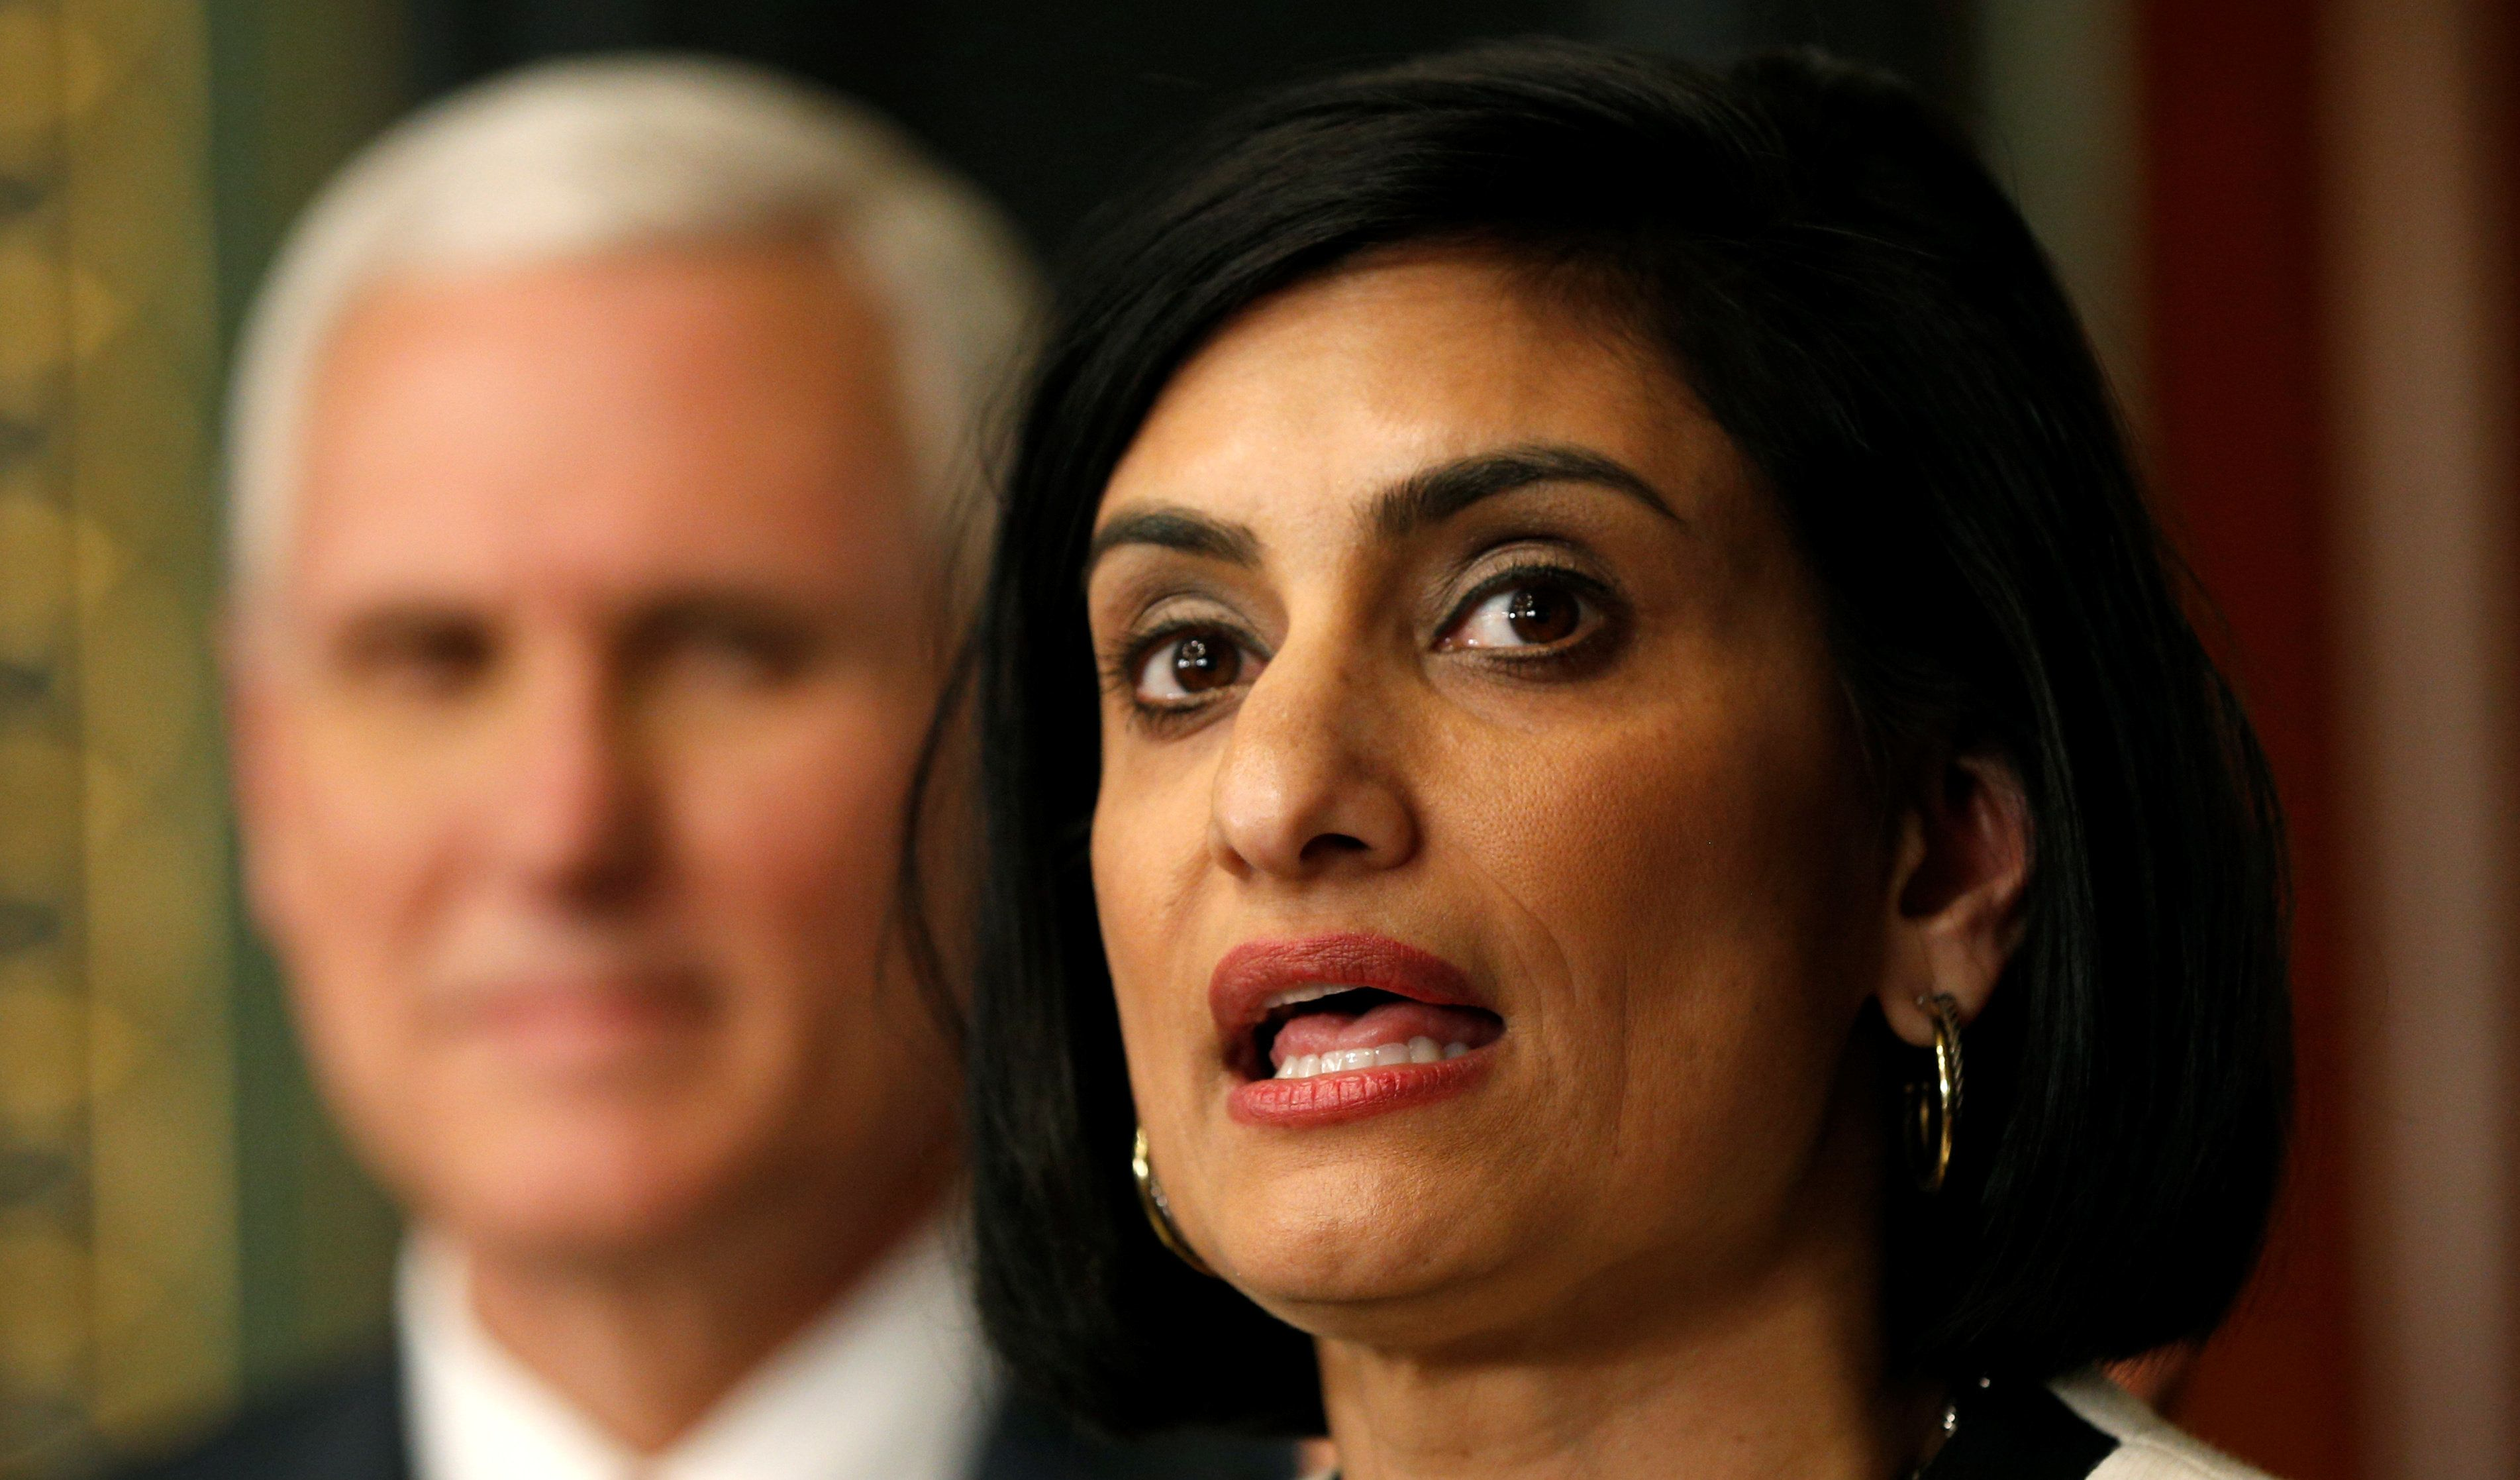 Administrator of the Centers for Medicare and Medicaid Services Seema Verma speaks after being sworn in by U.S. Vice Presiden